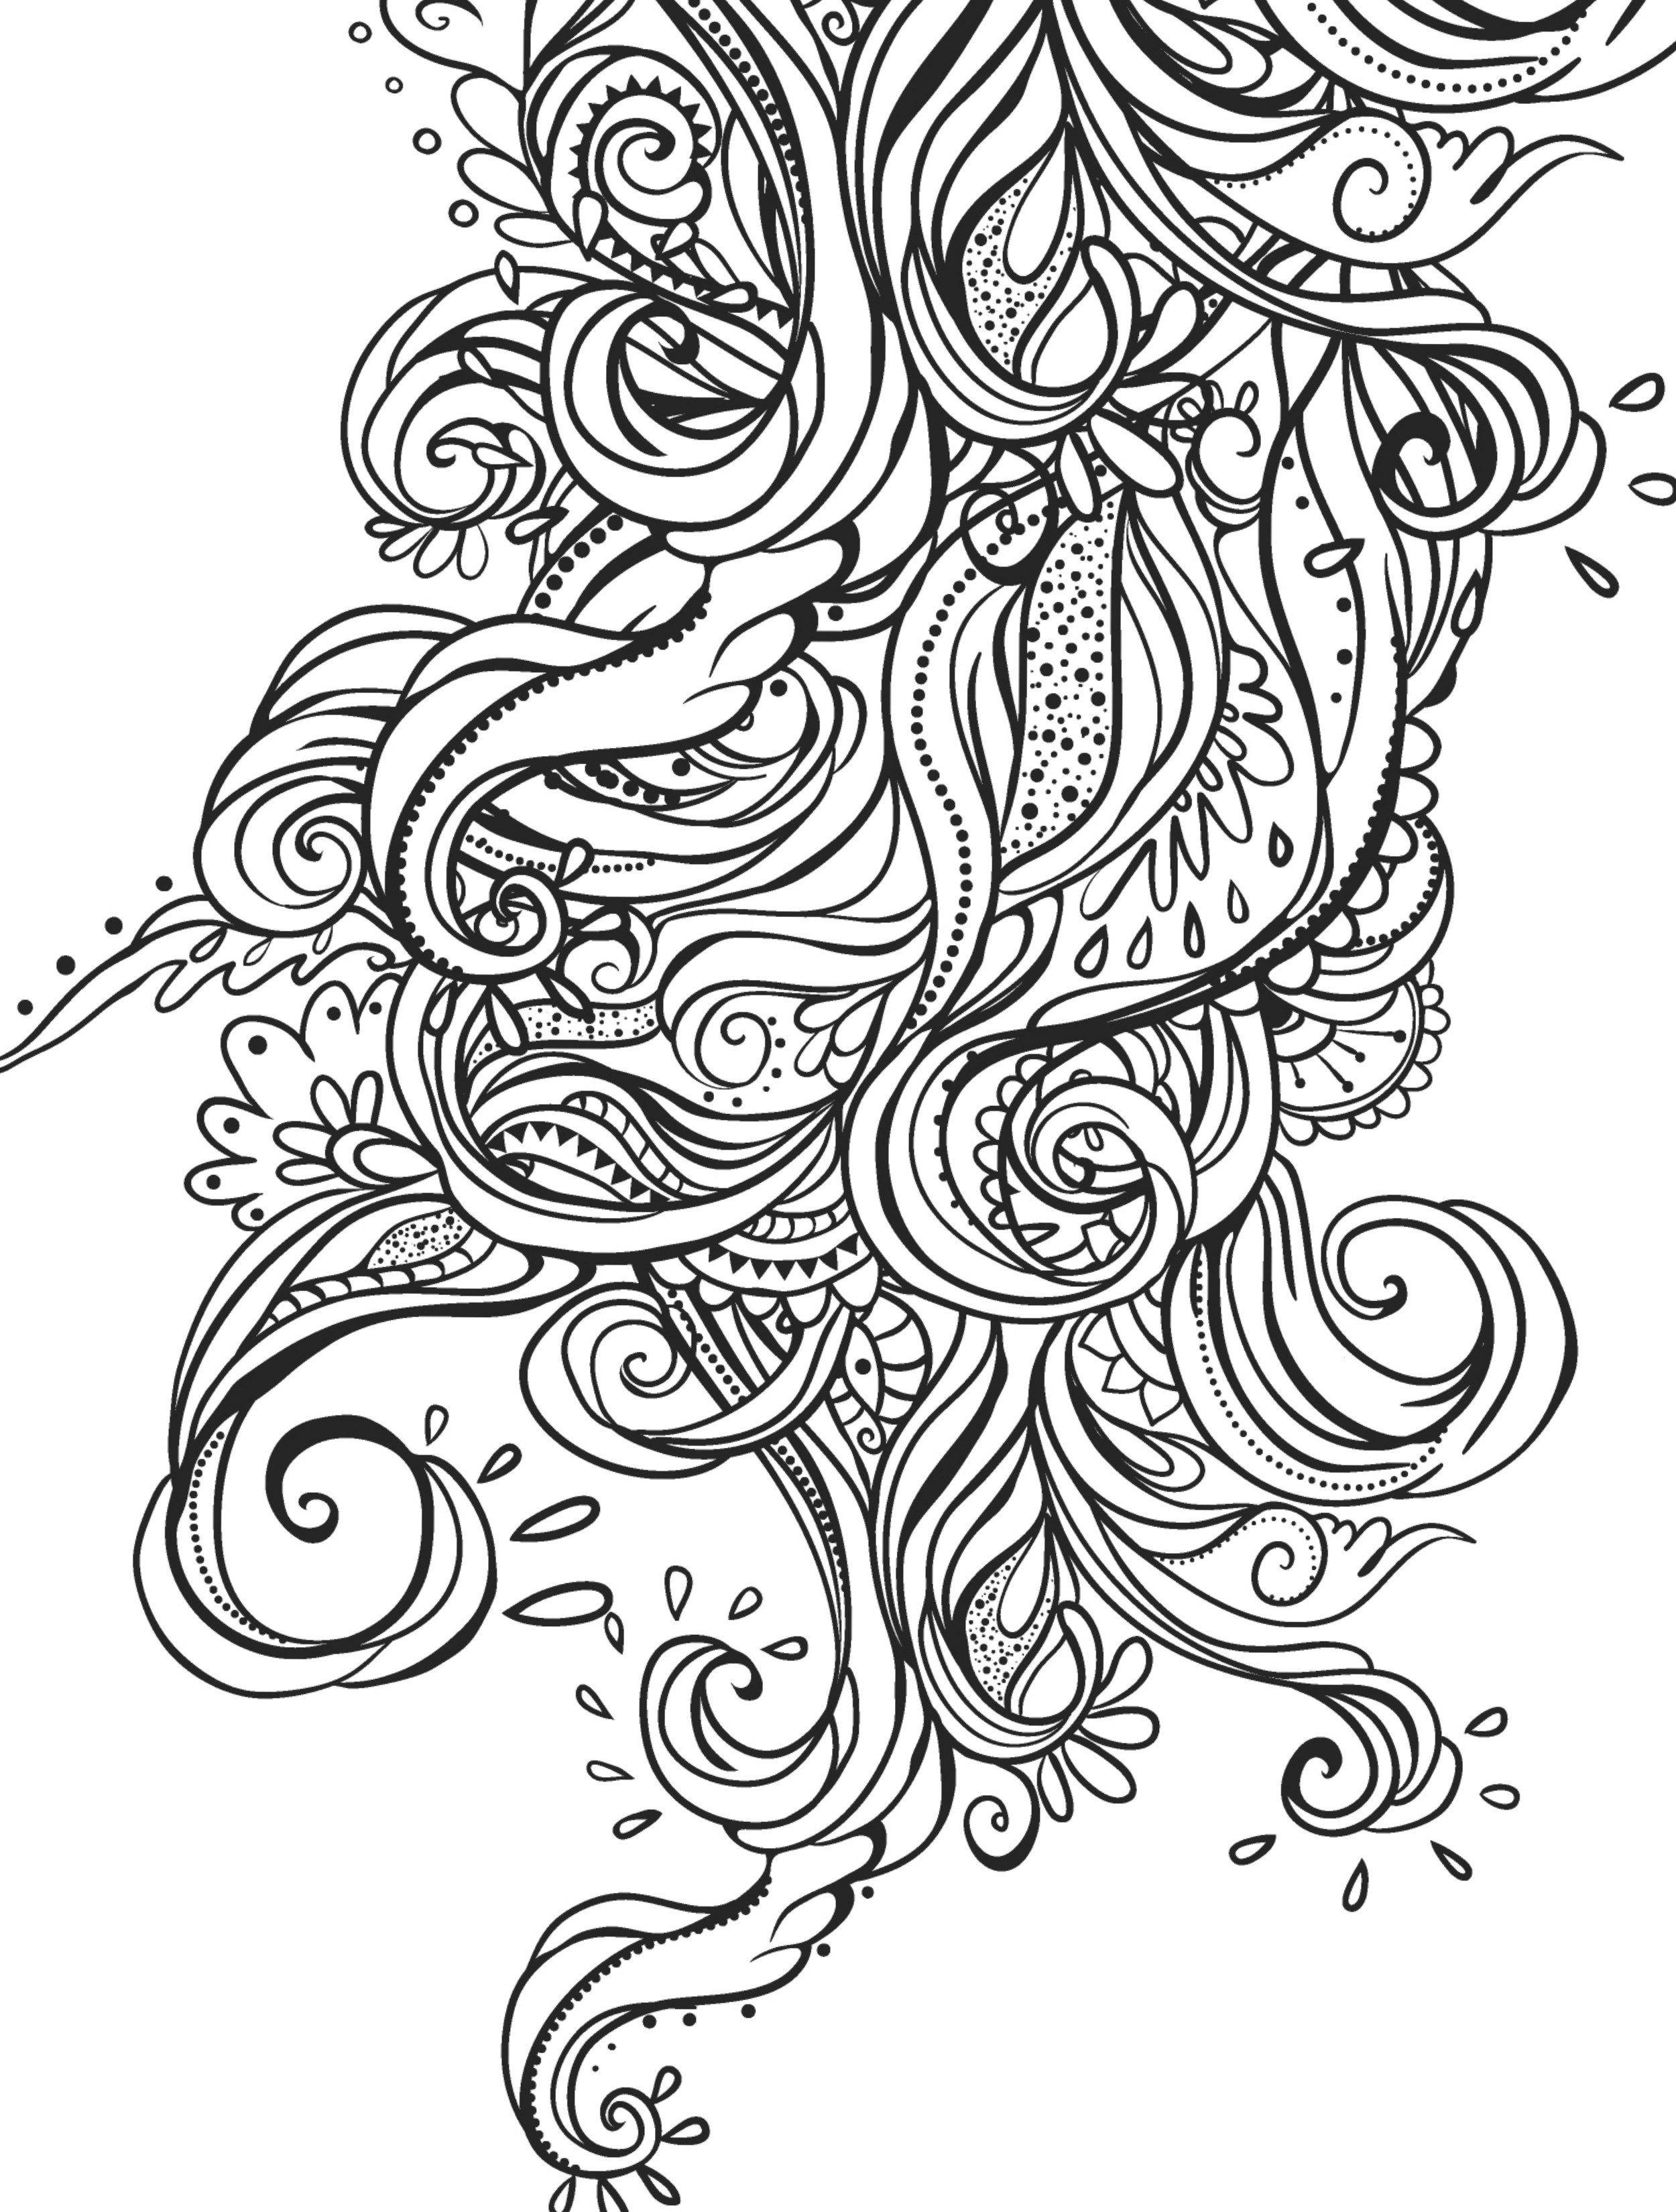 beautiful colouring pictures free online printable coloring pages how to draw hd videos pictures colouring beautiful